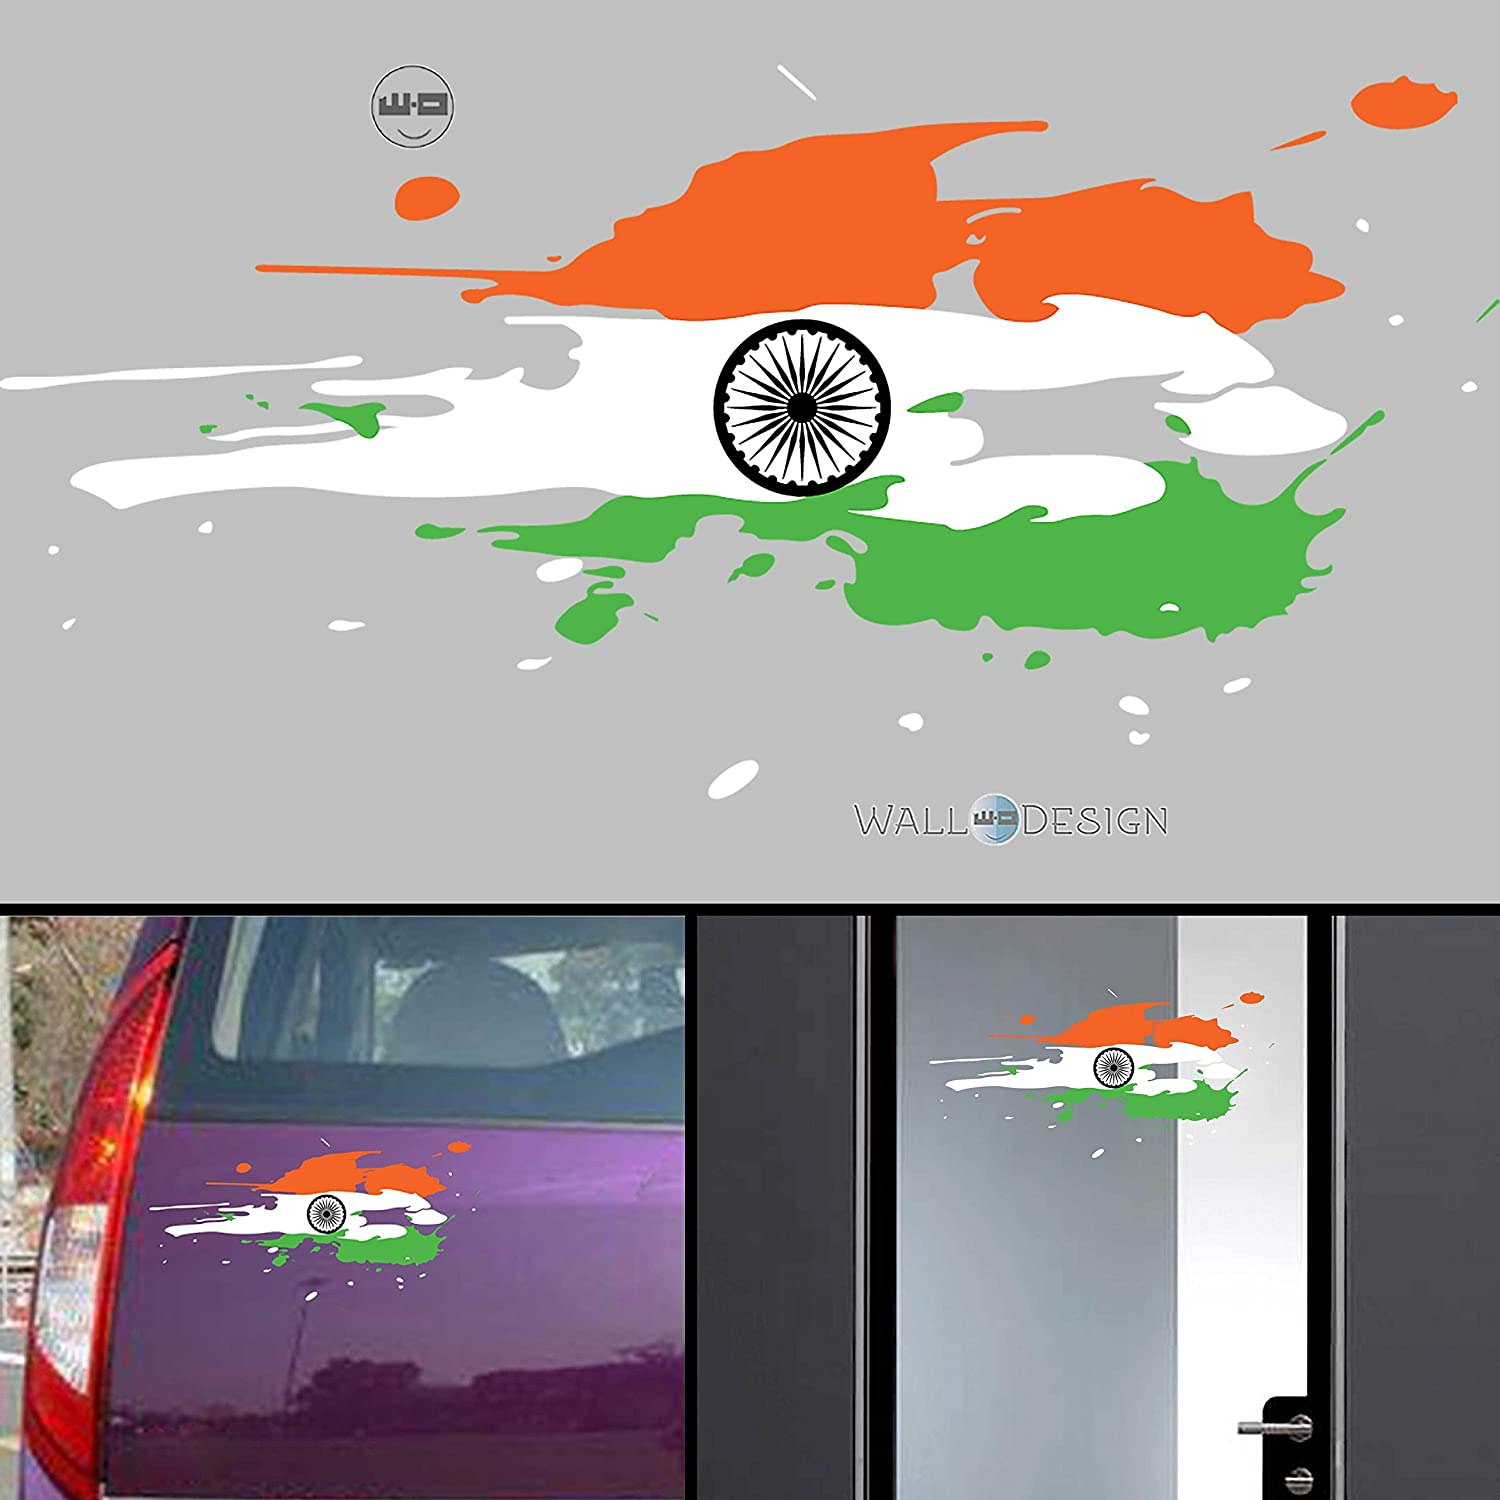 Bike stickers design online india - Walldesign India Flag Jai Bharath Flag Car Stickers For Body Glass Wall Colour